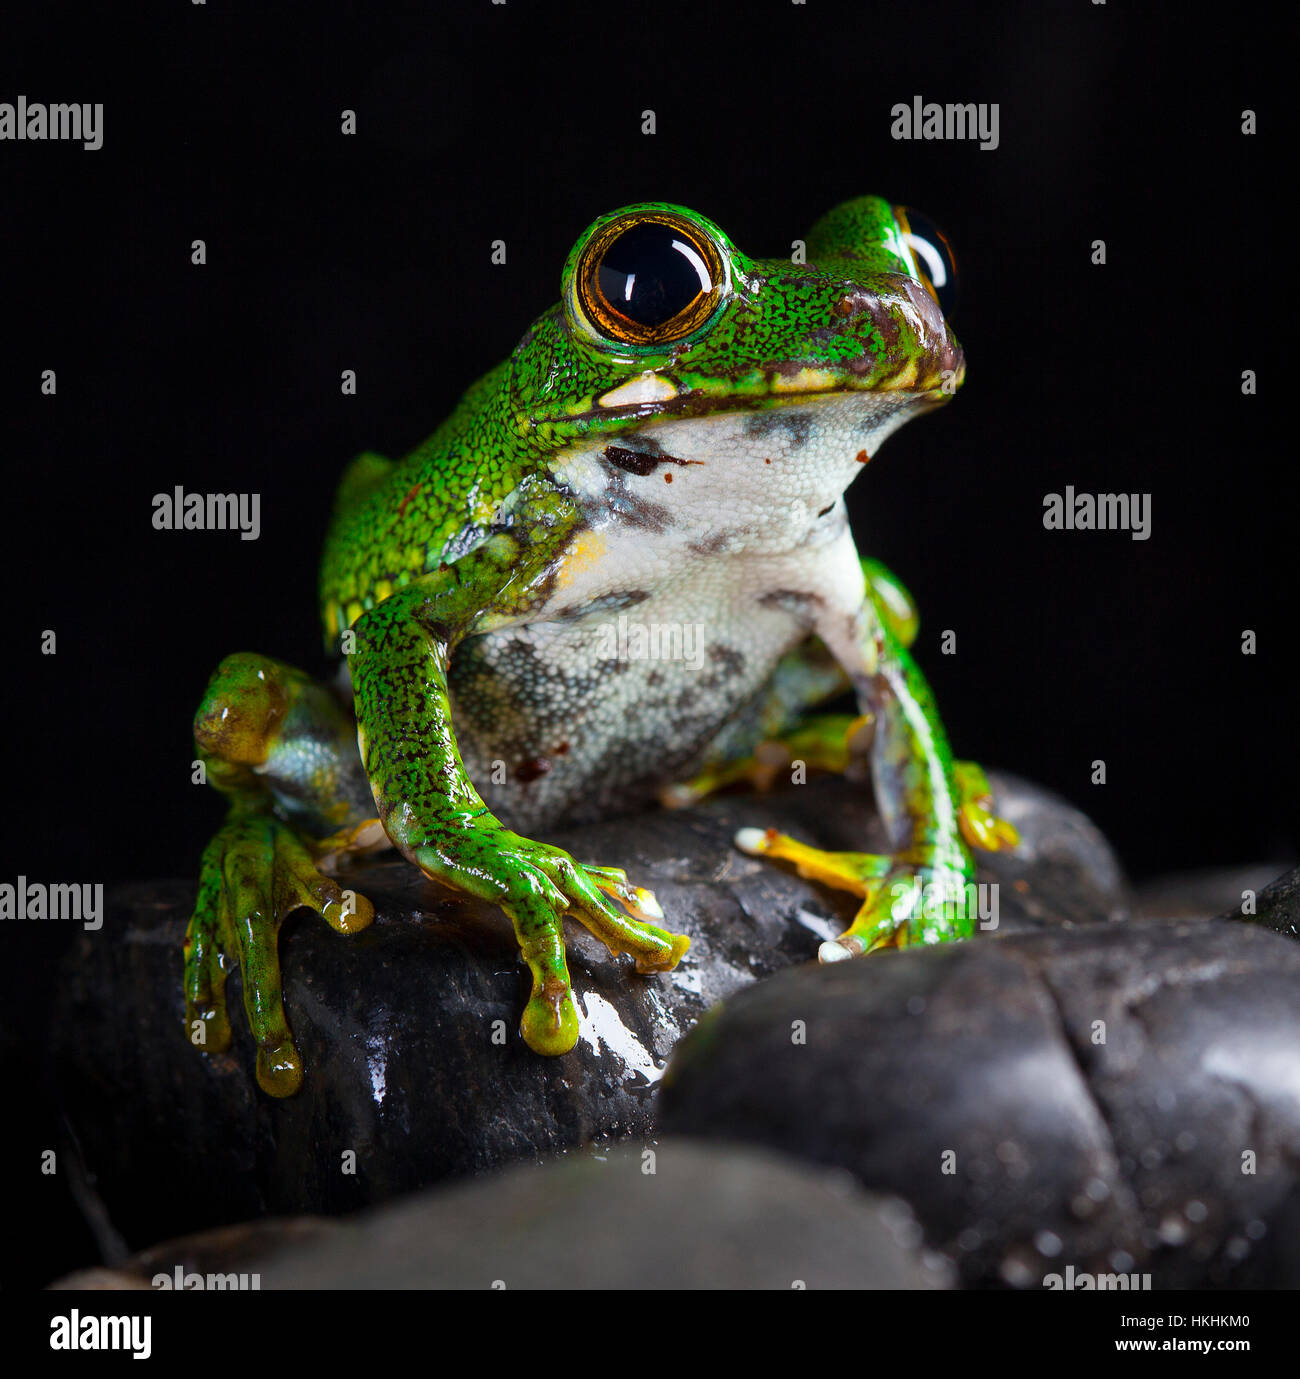 Leptopelis Vermiculatus frog in studio with black background - Stock Image